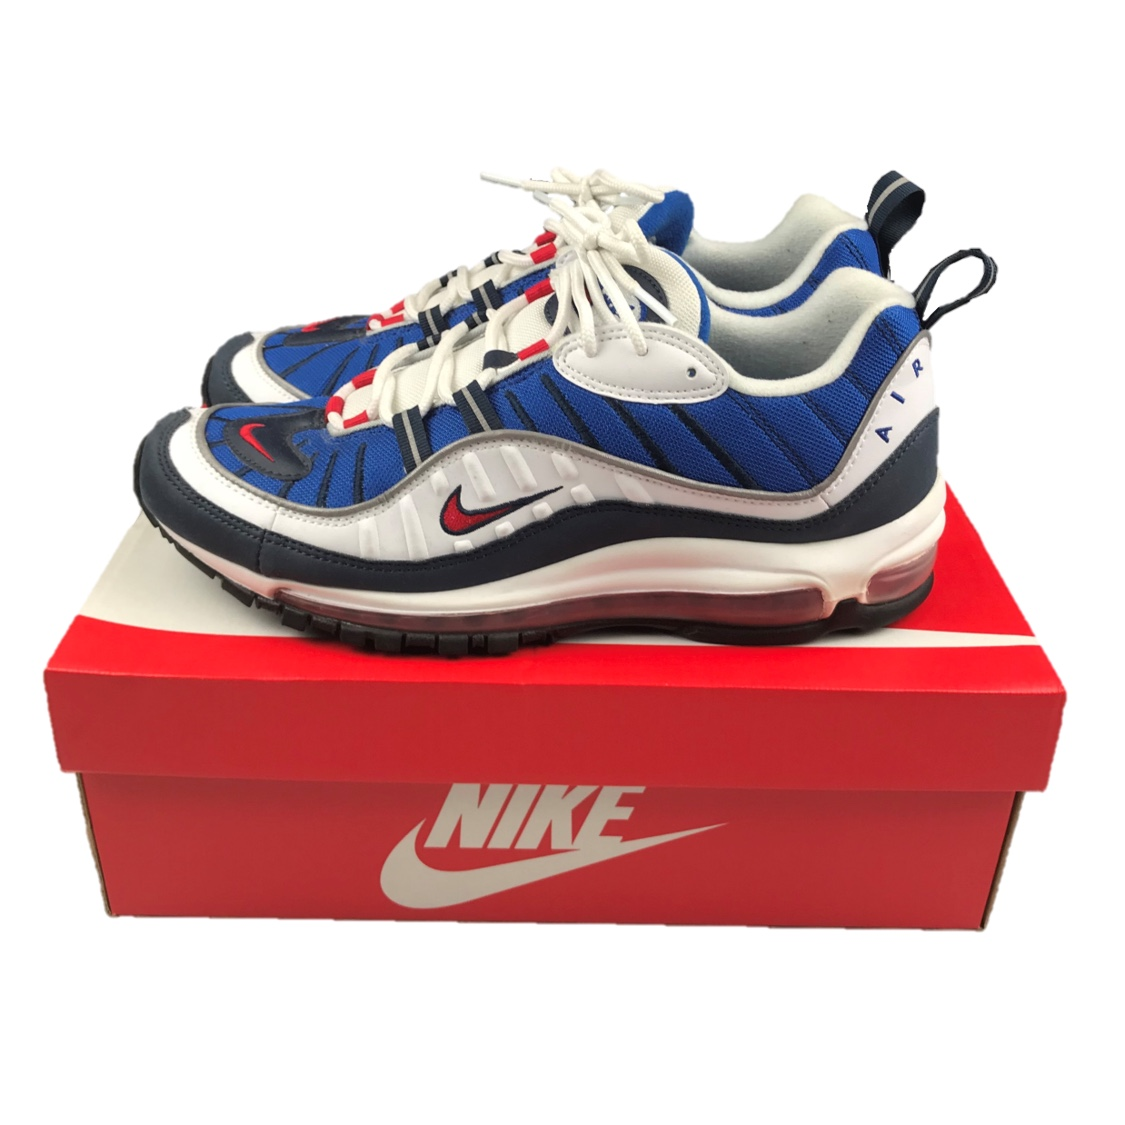 Nike Air Max 98 Gundams Comes With Original Depop